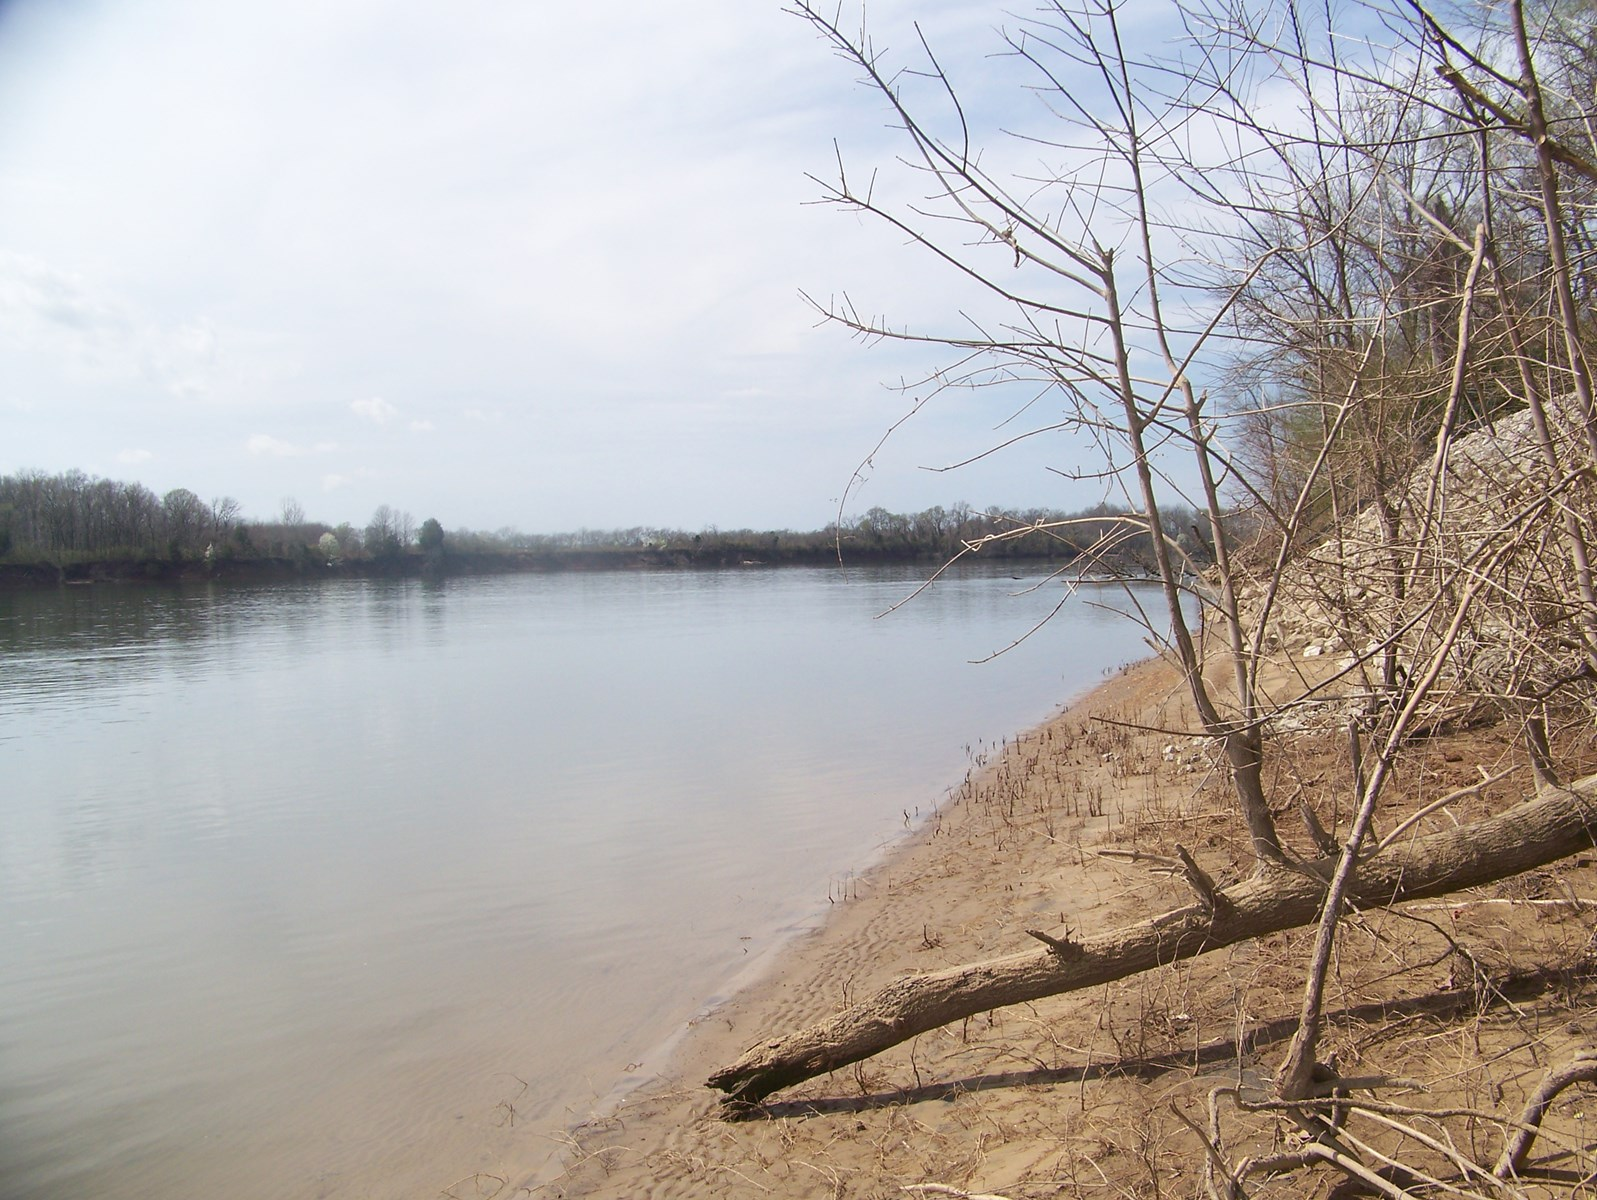 WATERFRONT LAND FOR SALE – TN RIVERFRONT LOT, FISHING